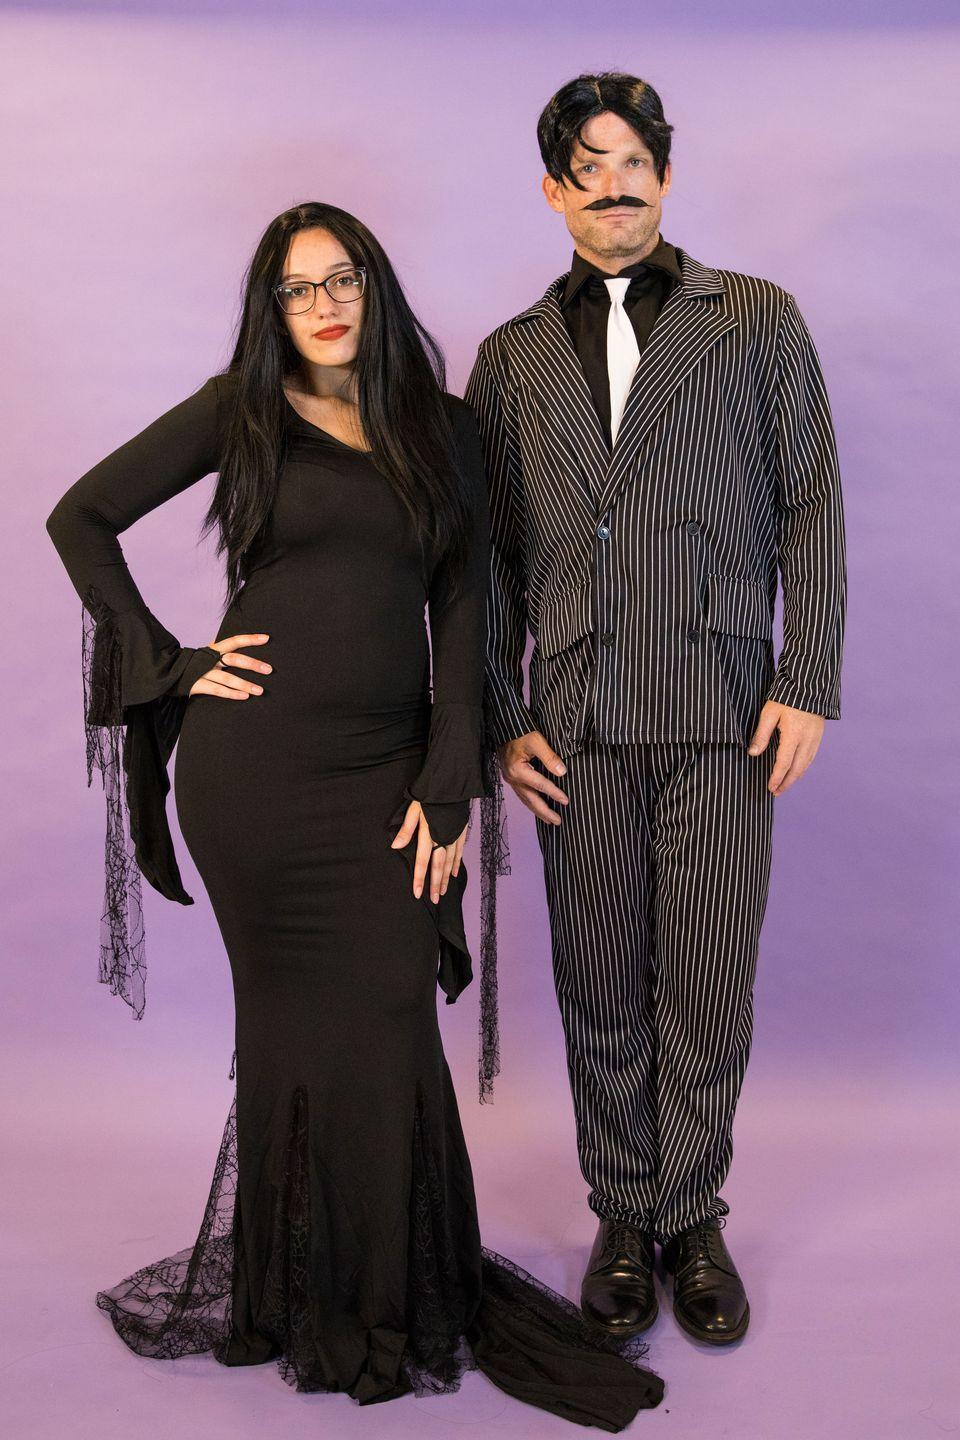 """<p>Be cute <em>and</em> creepy by dressing up as the heads of the Addams household in a pinstripe suit and a sexy black dress. </p><p><a class=""""link rapid-noclick-resp"""" href=""""https://www.amazon.com/Leg-Avenue-Immortal-Morticia-Mistress/dp/B01CJNCG66/?tag=syn-yahoo-20&ascsubtag=%5Bartid%7C10055.g.2625%5Bsrc%7Cyahoo-us"""" rel=""""nofollow noopener"""" target=""""_blank"""" data-ylk=""""slk:SHOP MORTICIA DRESS"""">SHOP MORTICIA DRESS</a></p><p> <a class=""""link rapid-noclick-resp"""" href=""""https://www.amazon.com/gp/product/B000UVGKMG?tag=syn-yahoo-20&ascsubtag=%5Bartid%7C10055.g.2625%5Bsrc%7Cyahoo-us"""" rel=""""nofollow noopener"""" target=""""_blank"""" data-ylk=""""slk:SHOP GOMEZ COSTUME"""">SHOP GOMEZ COSTUME</a></p><p><strong>RELATED</strong>: <a href=""""https://www.goodhousekeeping.com/holidays/halloween-ideas/g28589490/best-wednesday-addams-costume-ideas/"""" rel=""""nofollow noopener"""" target=""""_blank"""" data-ylk=""""slk:How to Create the Ultimate Wednesday Addams Halloween Costume"""" class=""""link rapid-noclick-resp"""">How to Create the Ultimate Wednesday Addams Halloween Costume</a></p>"""